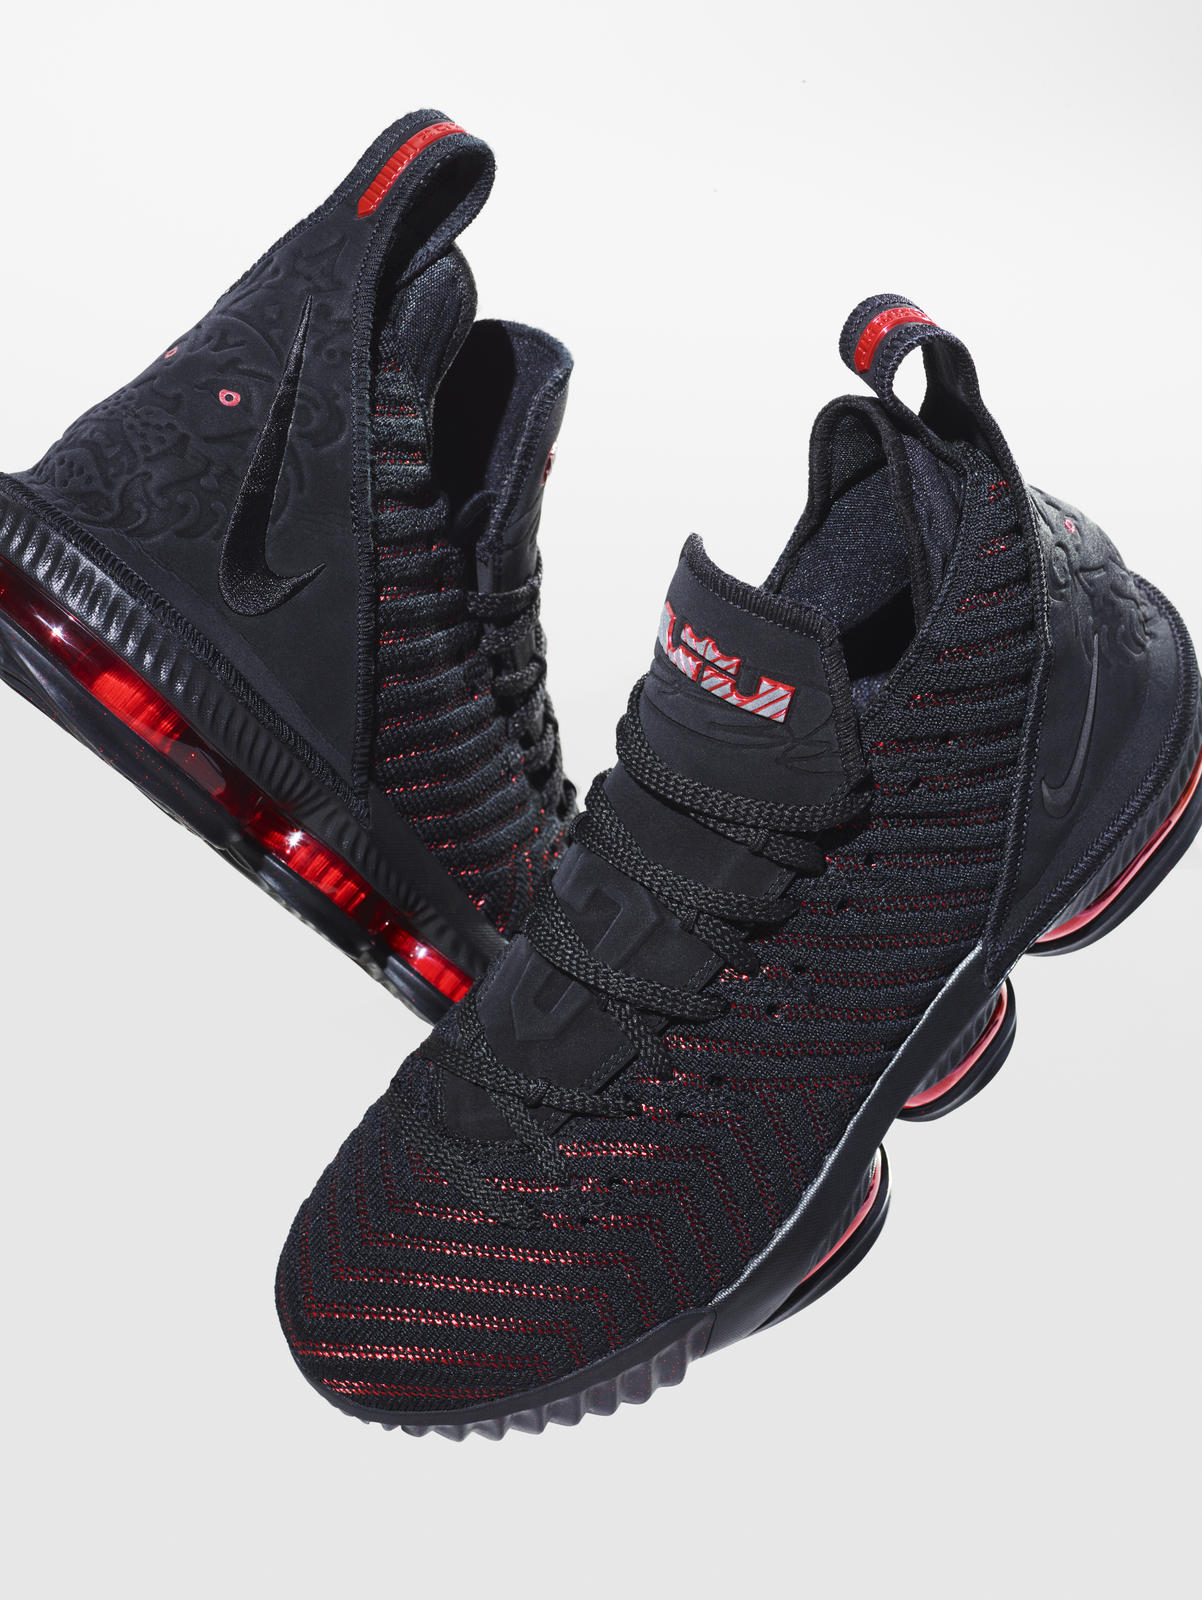 lebron 16 fresh bred lebron james